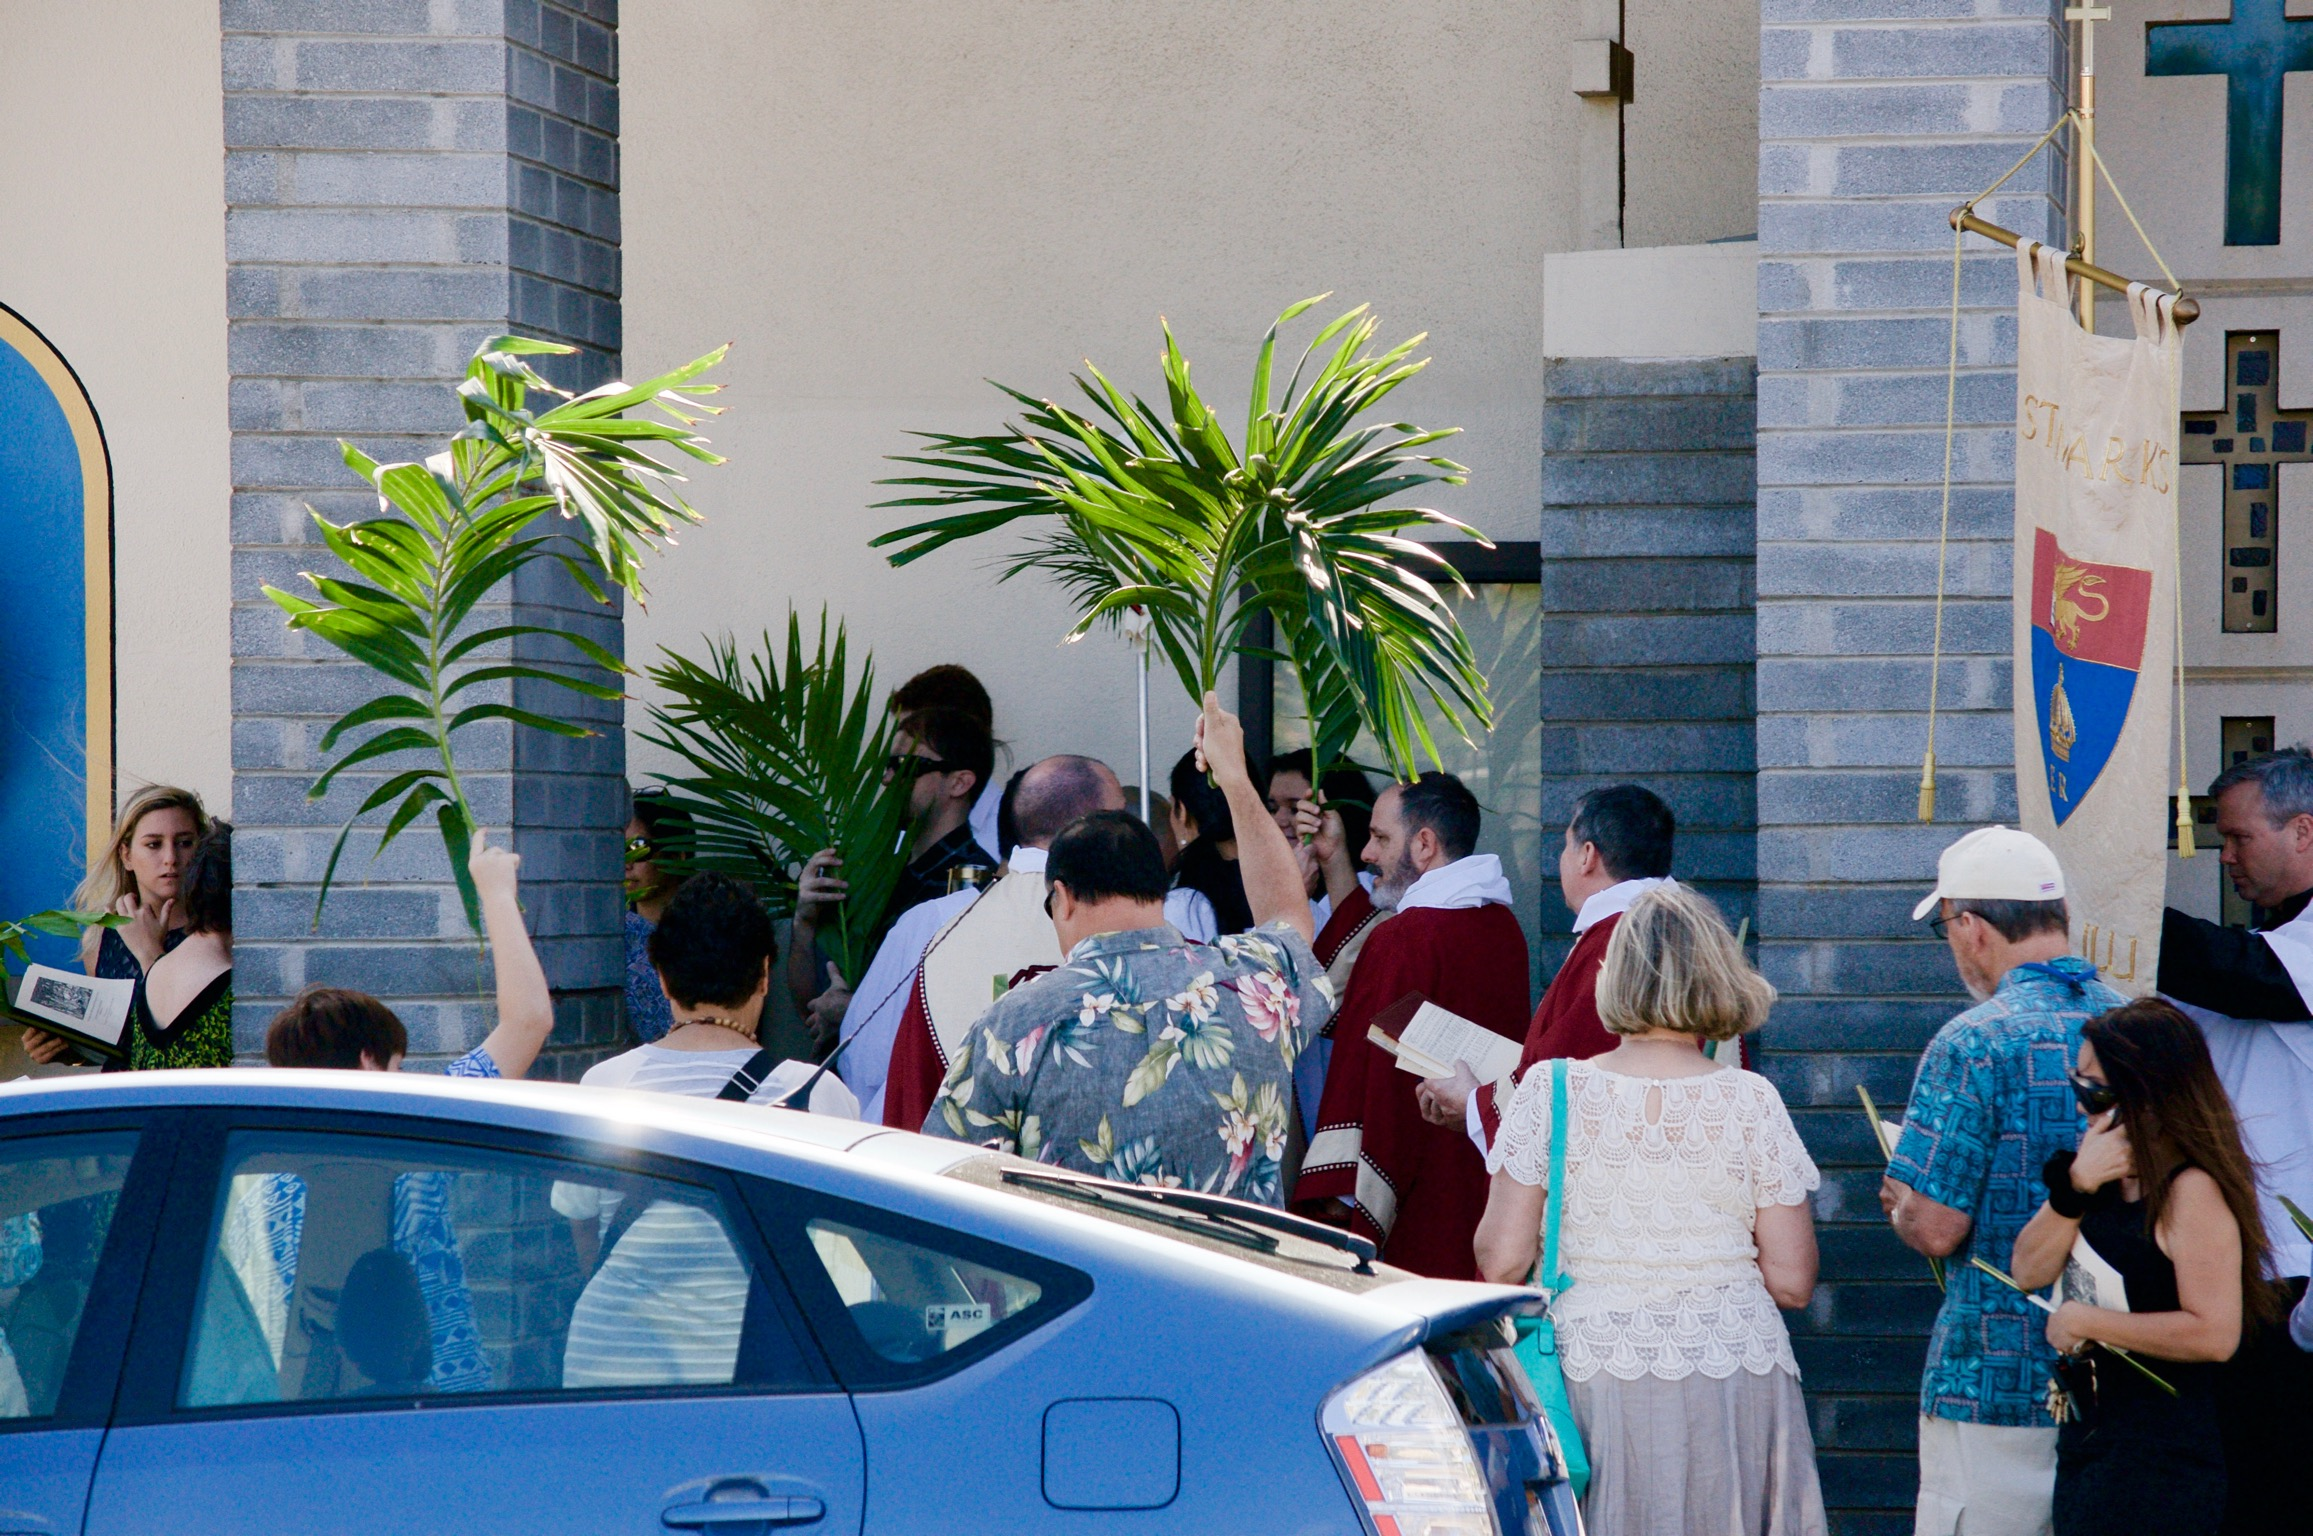 The Station at the front doors of the church during the Palm Sunday Procession - Hosanna to the Son of David!